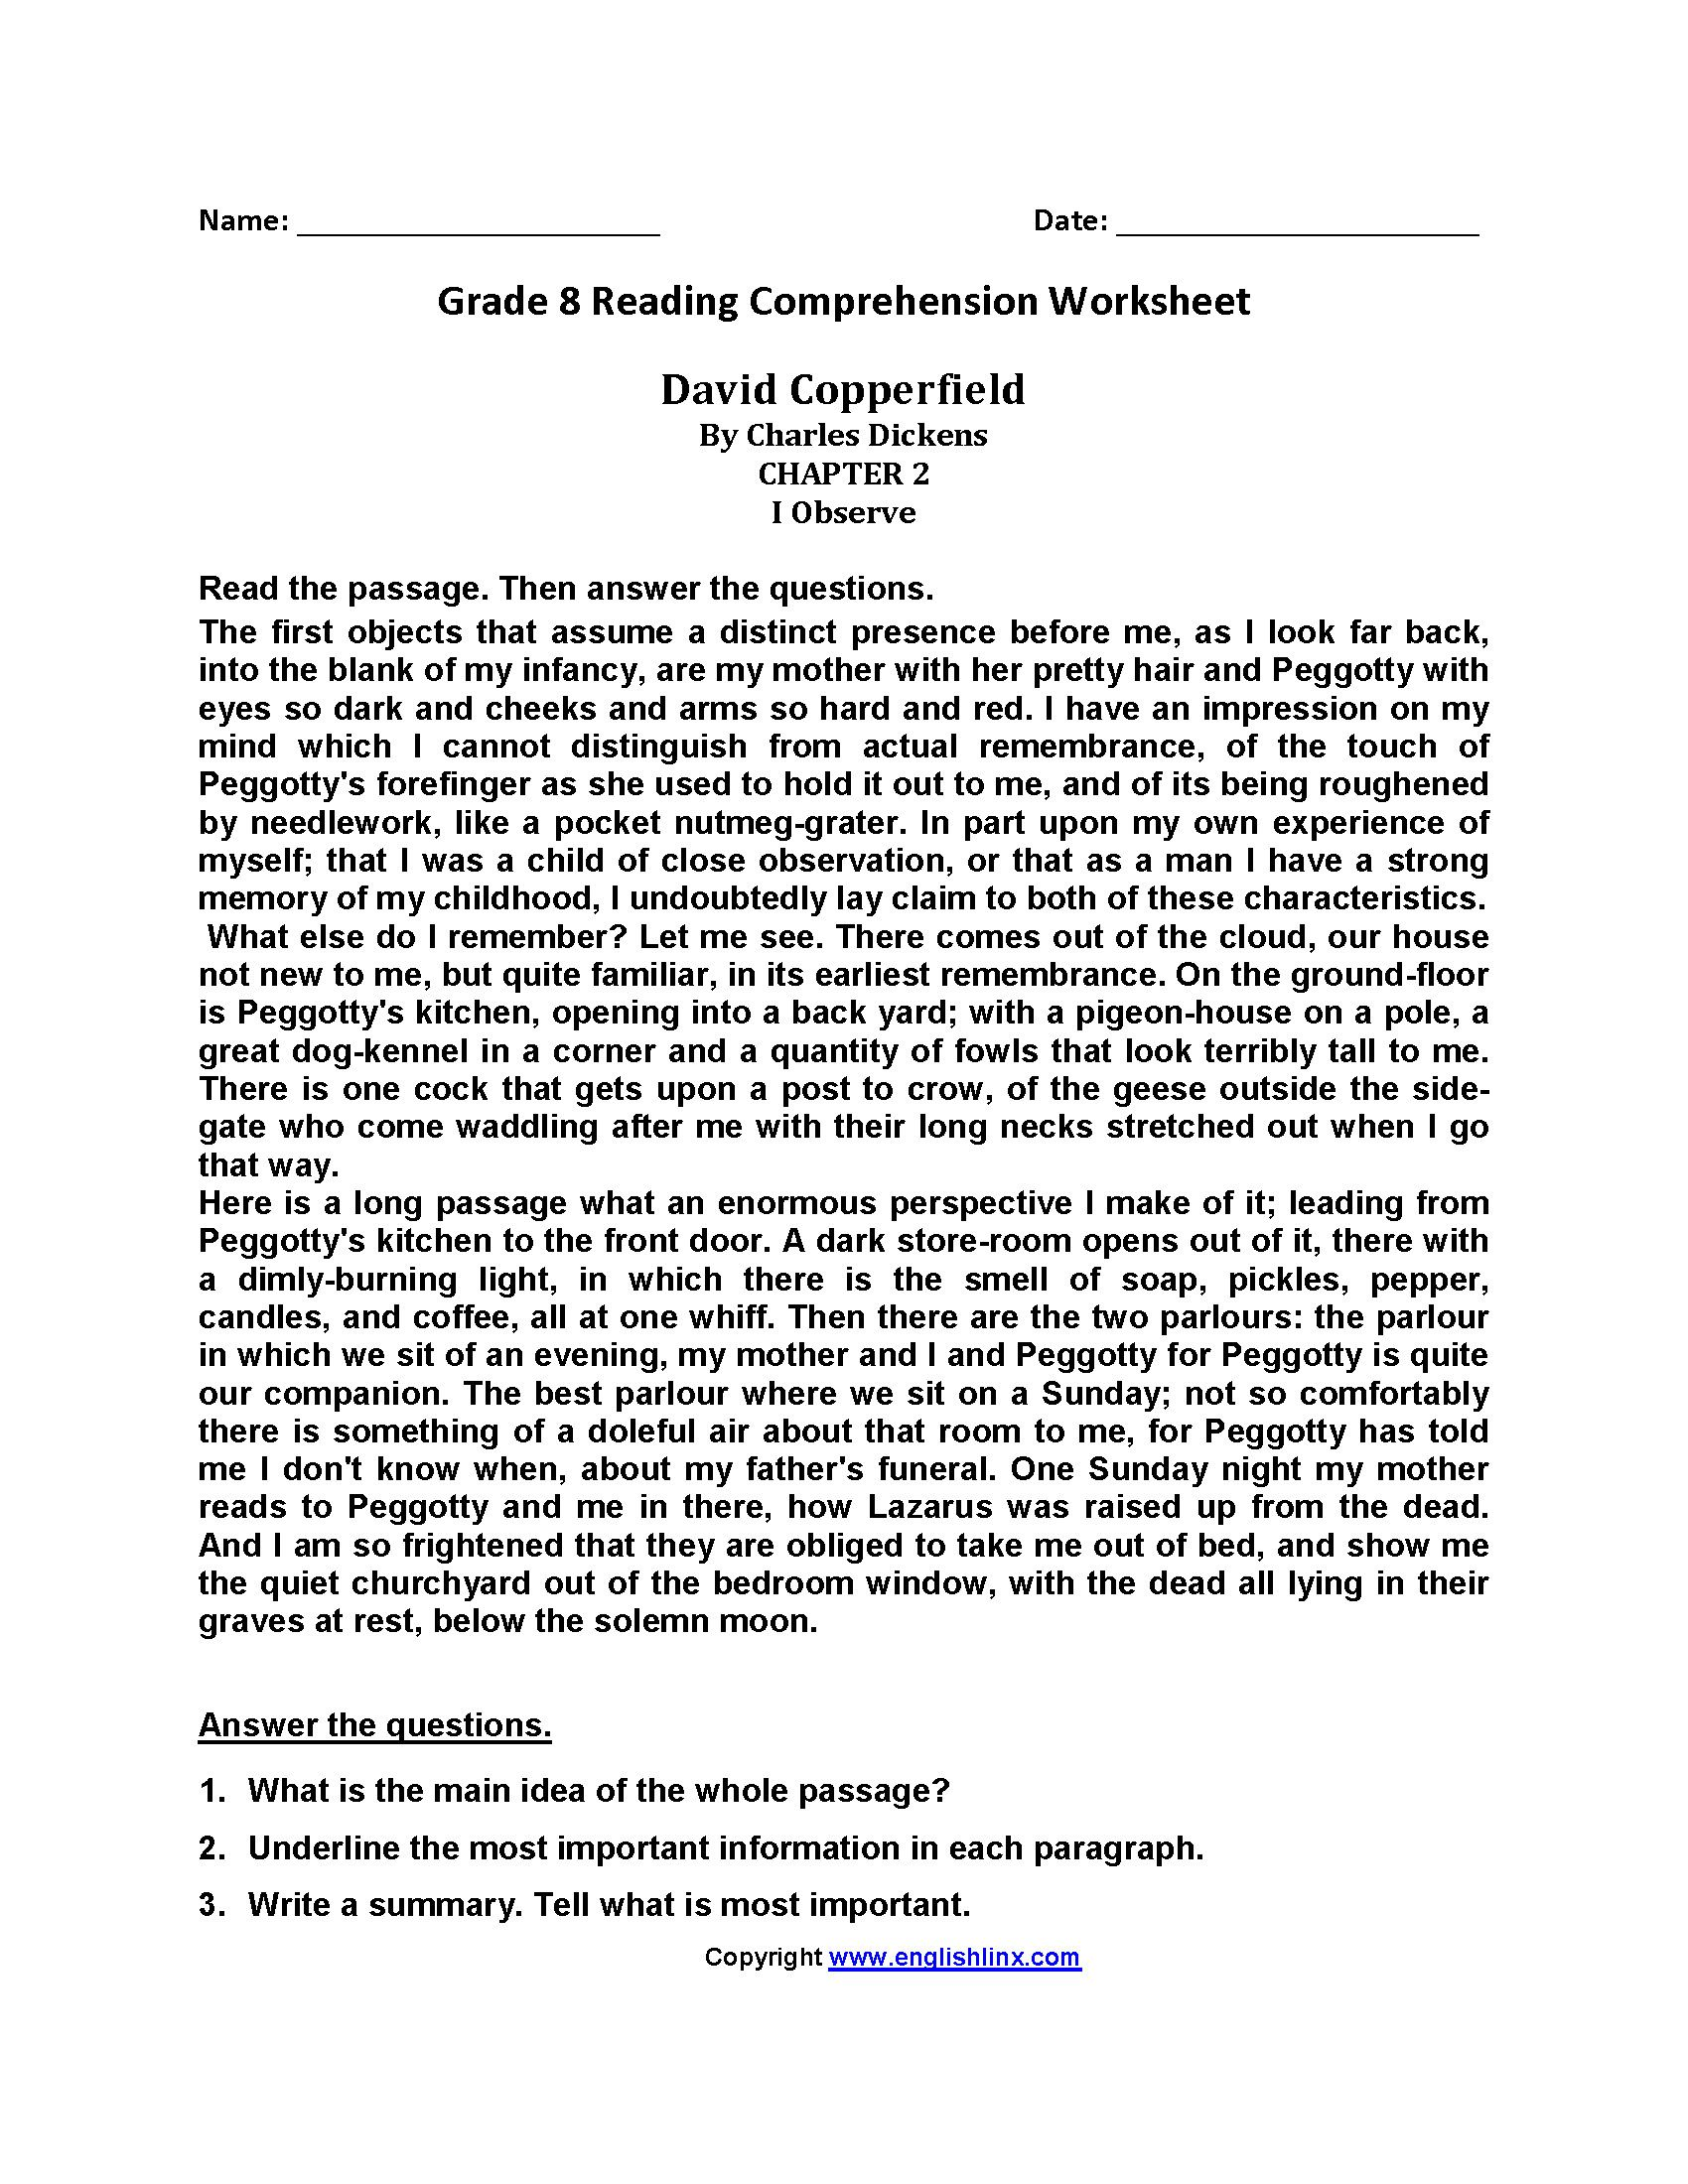 2 Worksheets Reading Comprehension David Copperfield Free